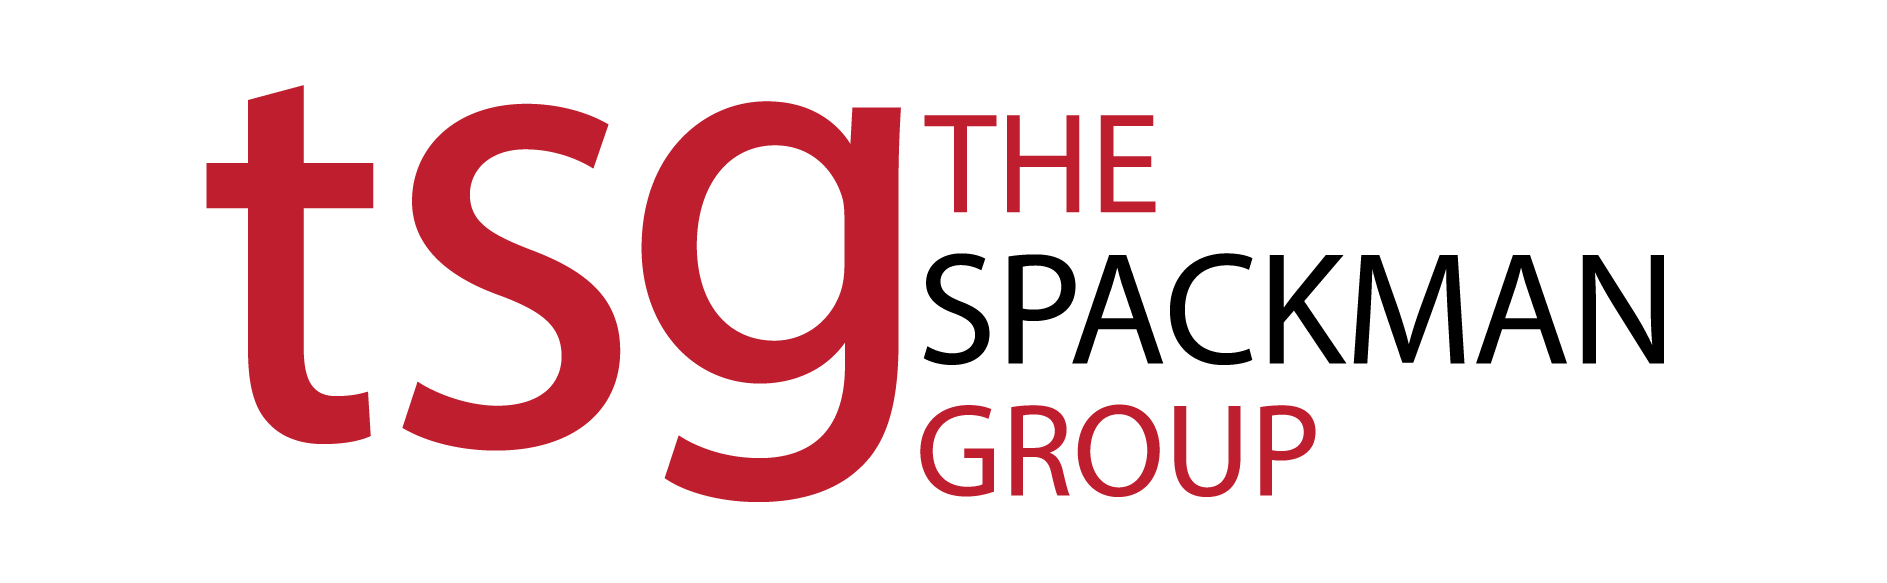 The Spackman Group - Buy Sell Invest in Real Estate